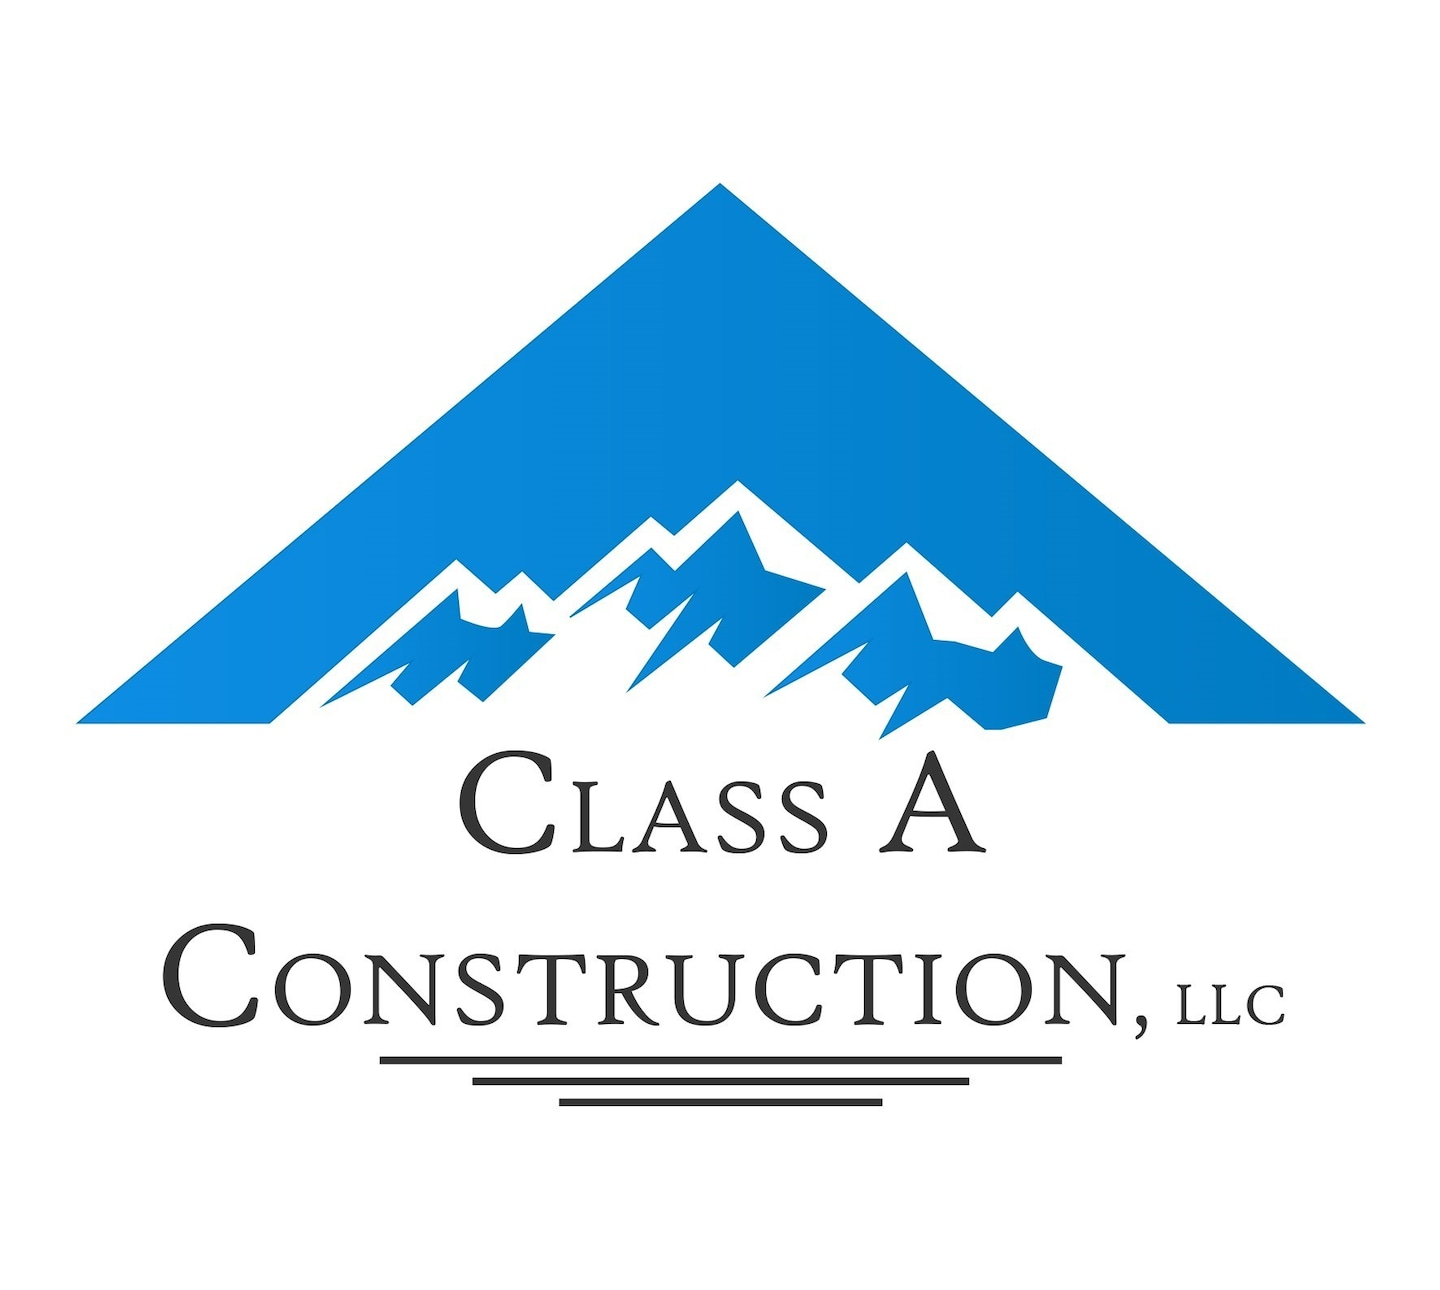 Class A Construction, LLC